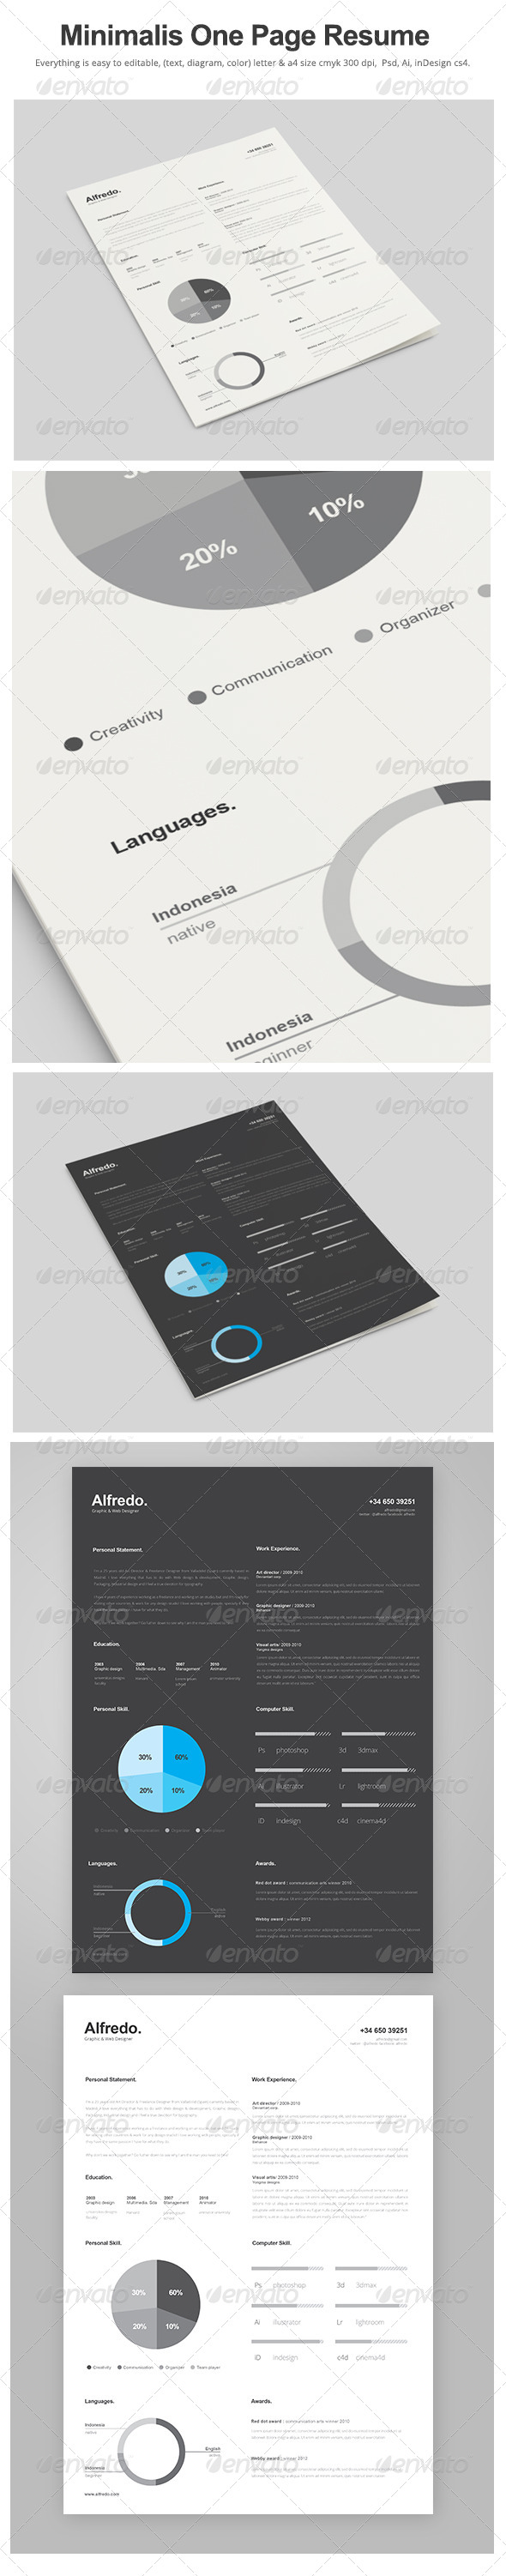 GraphicRiver Minimalist One Page Resume 7712390